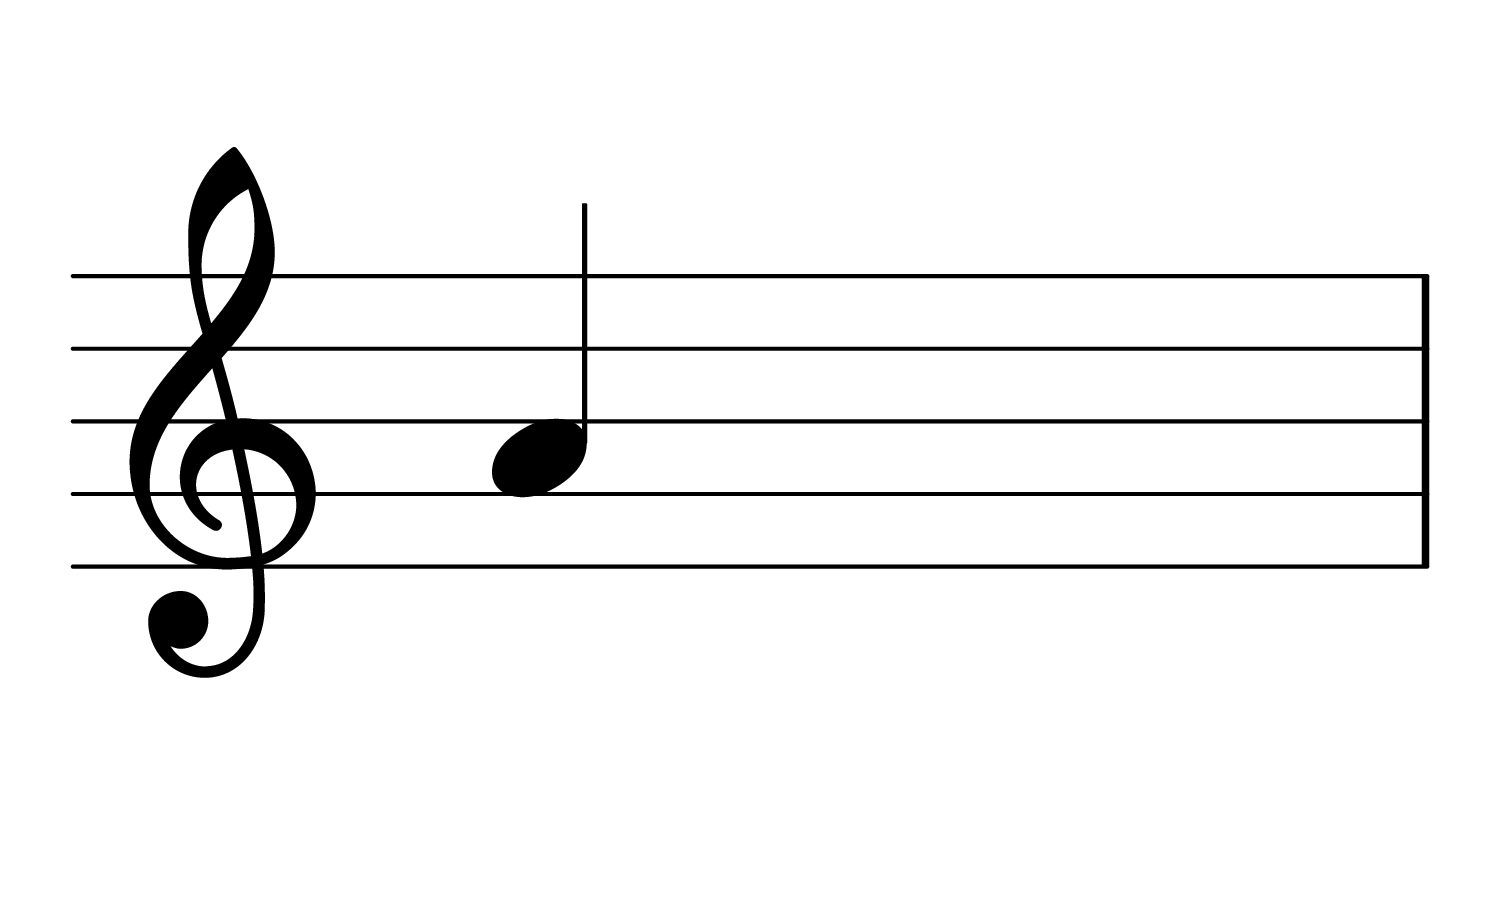 The note A on the treble clef.